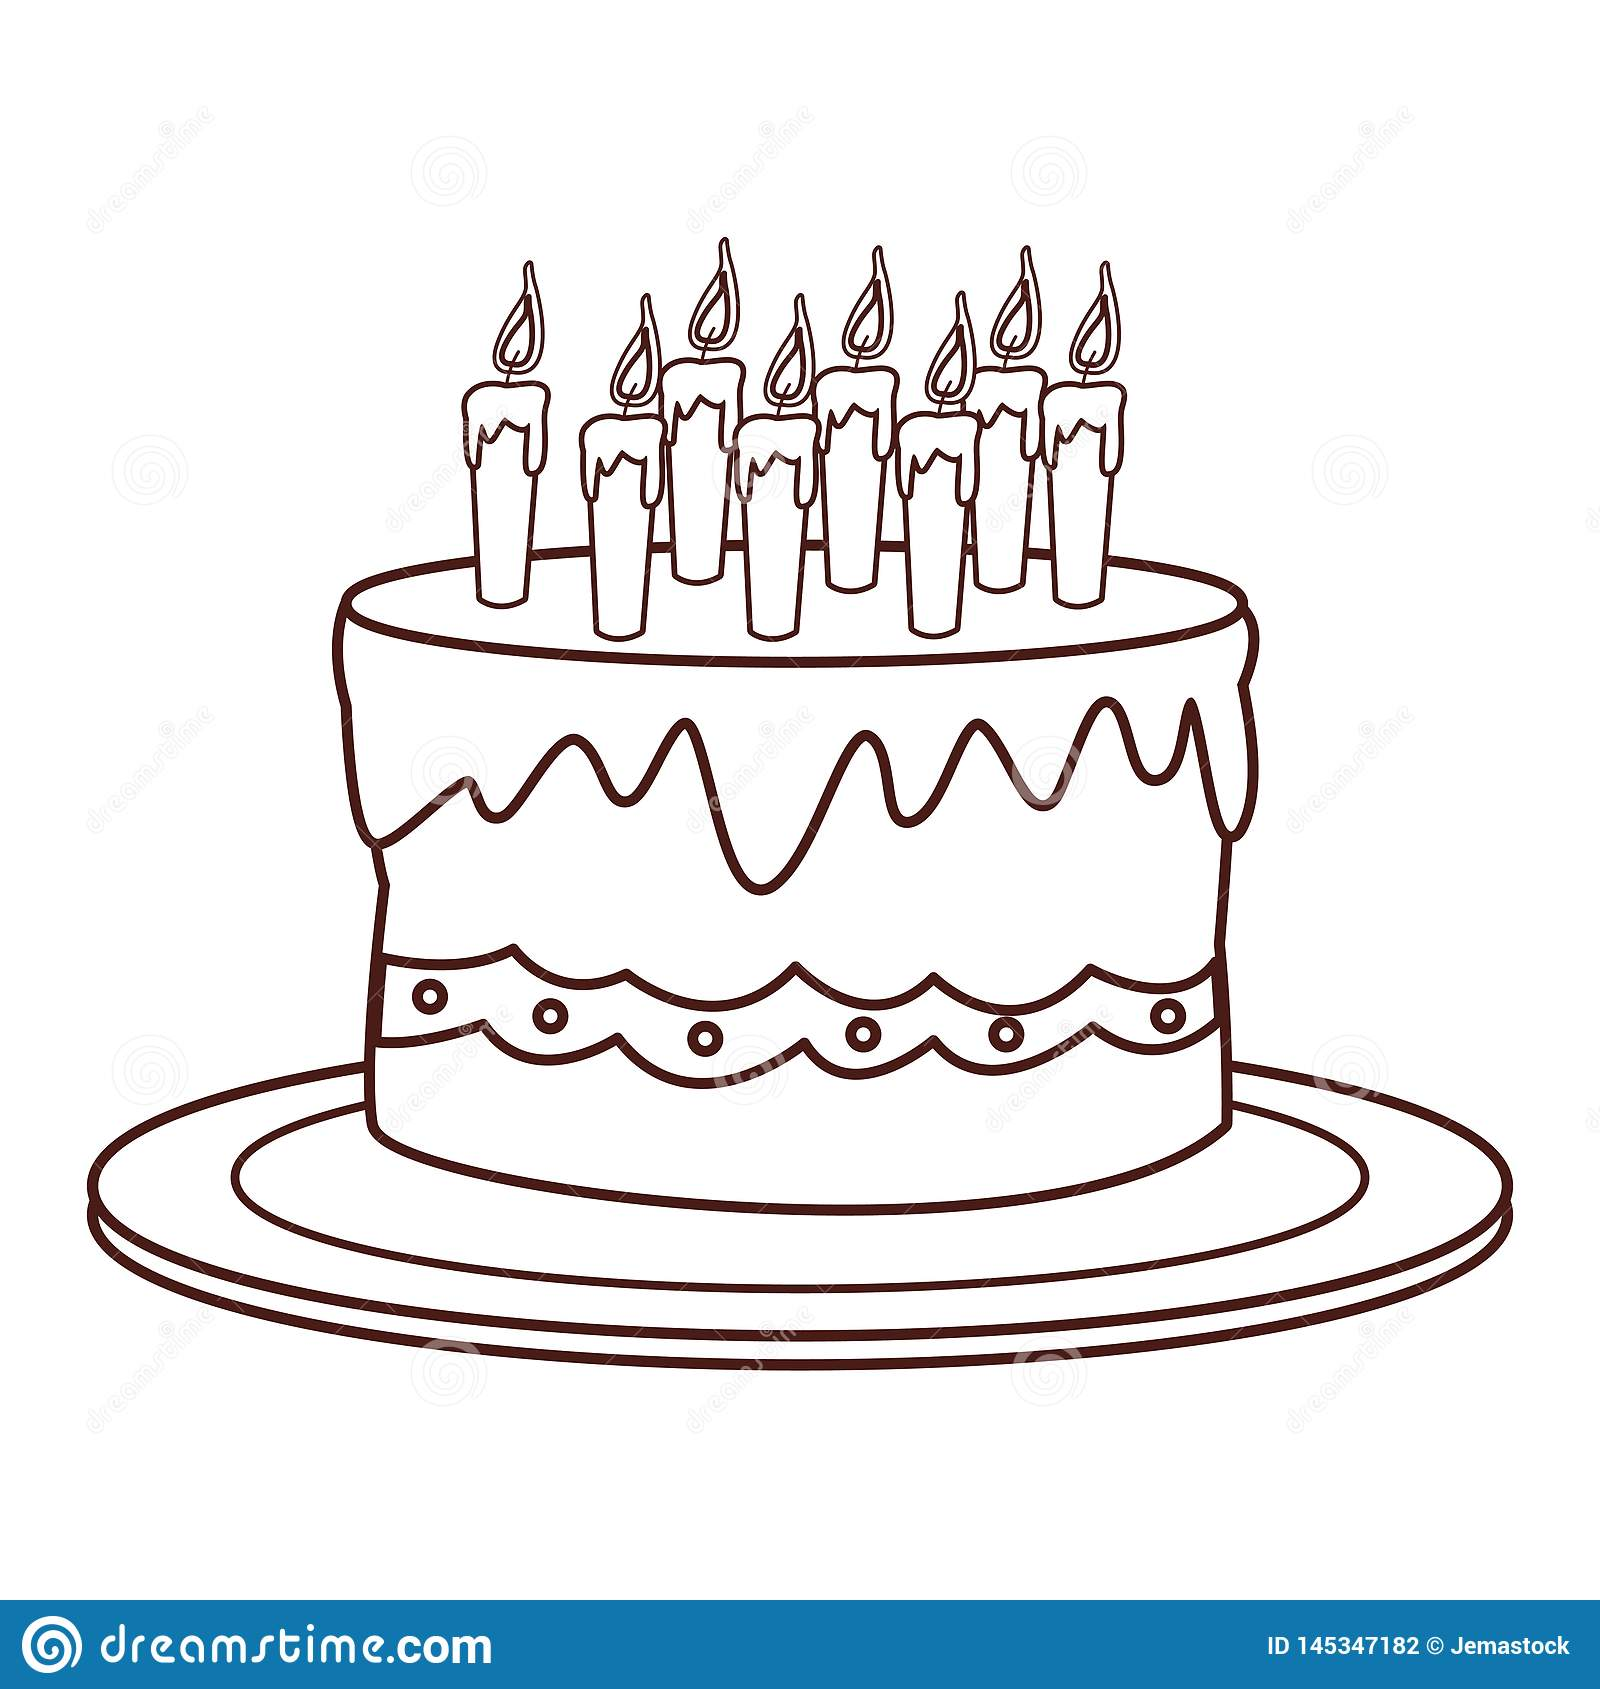 Stupendous Birthday Cake Cartoon Stock Vector Illustration Of Pastry 145347182 Funny Birthday Cards Online Inifodamsfinfo